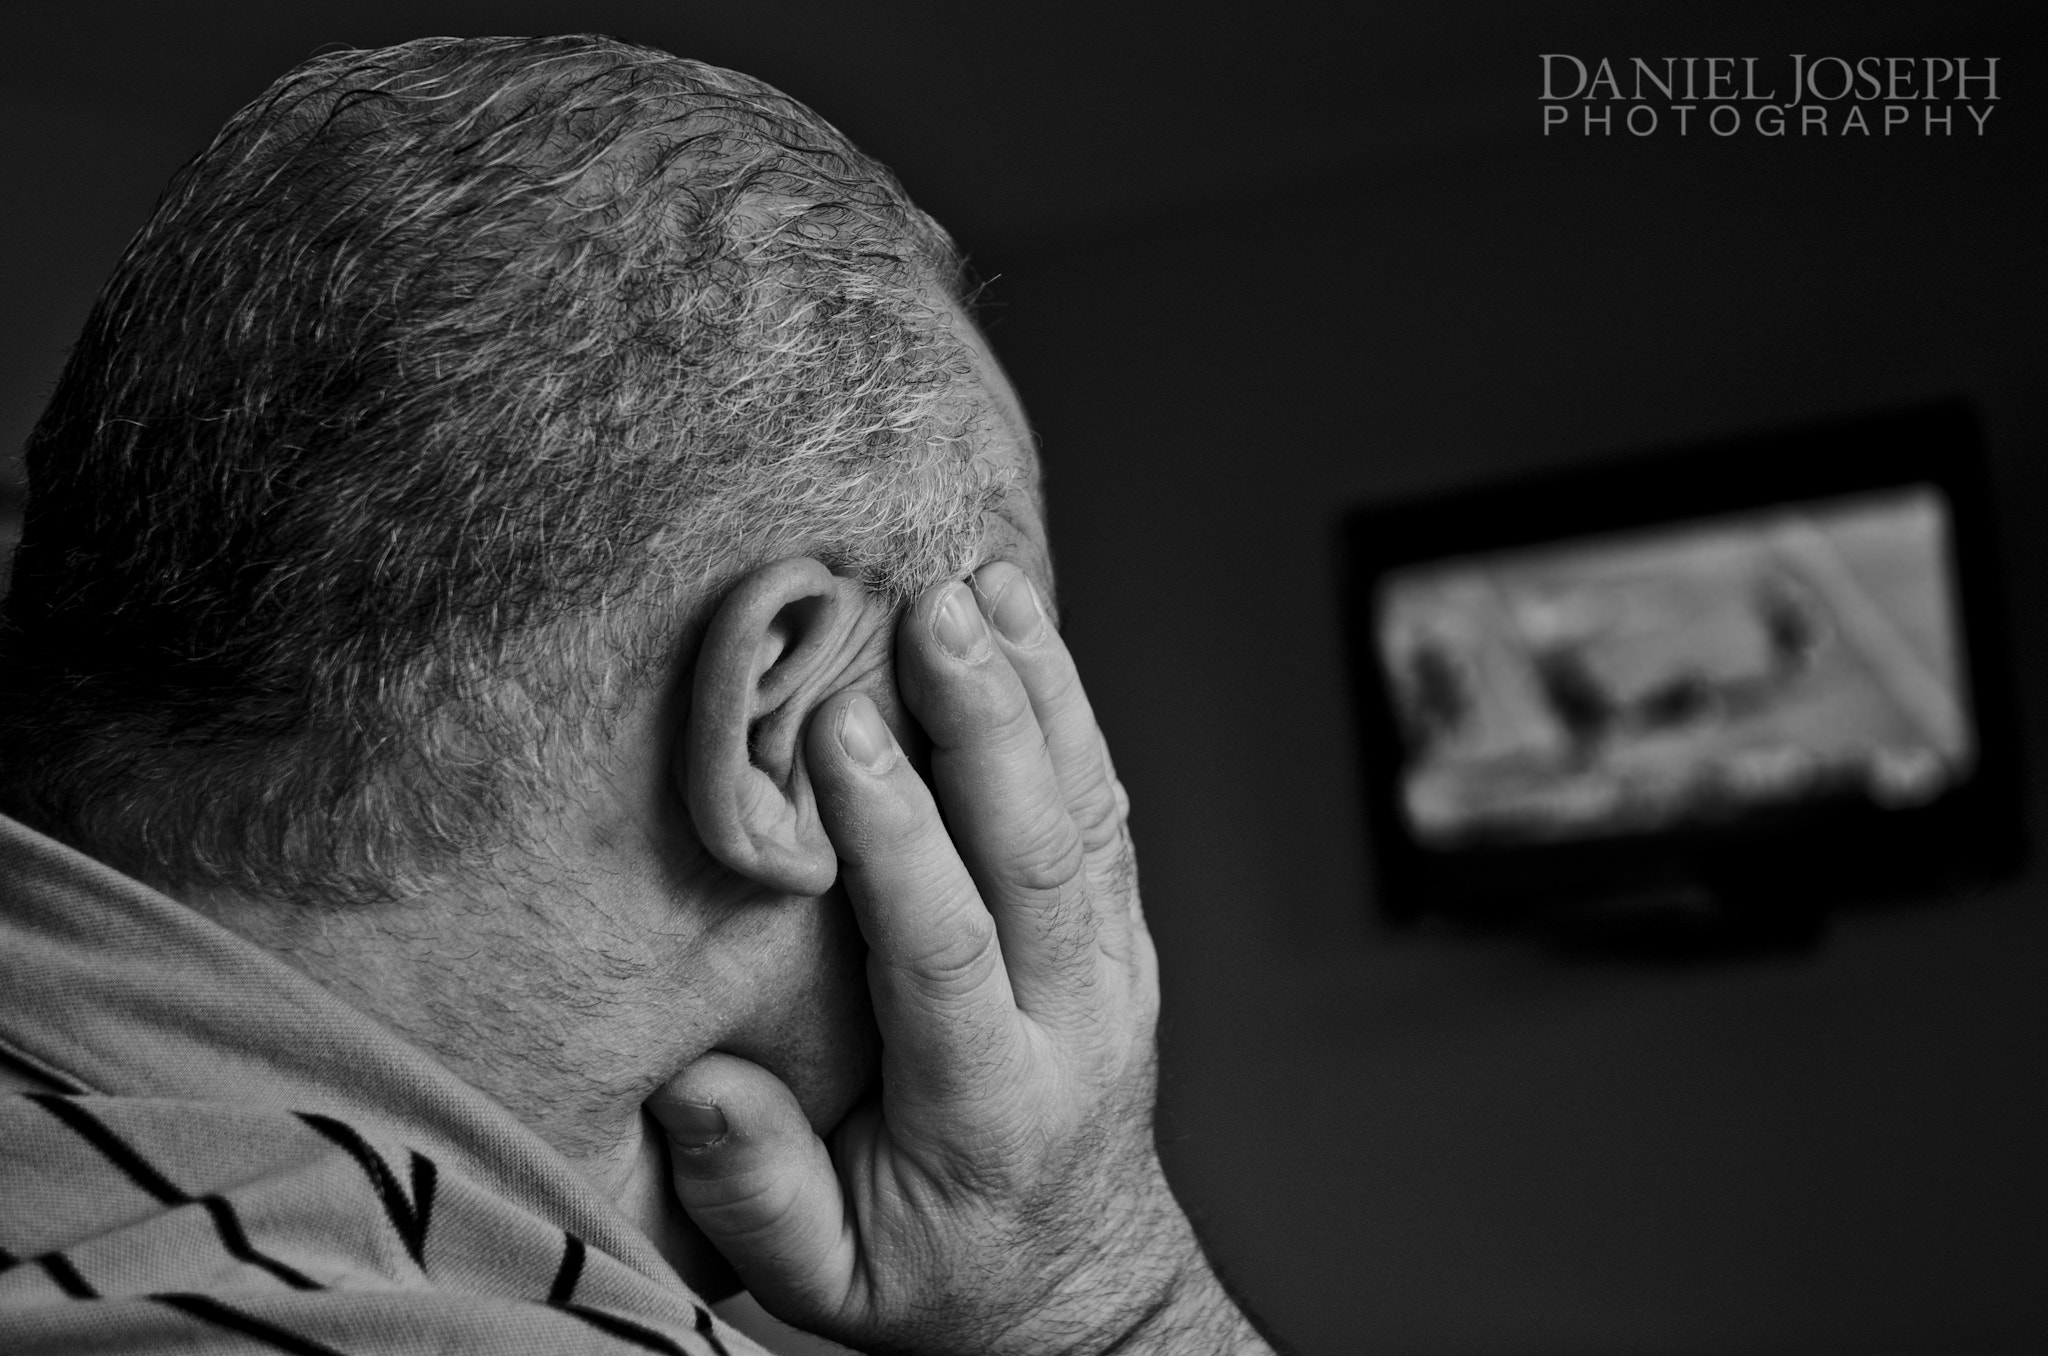 Photograph Watching Football by Daniel Joseph on 500px